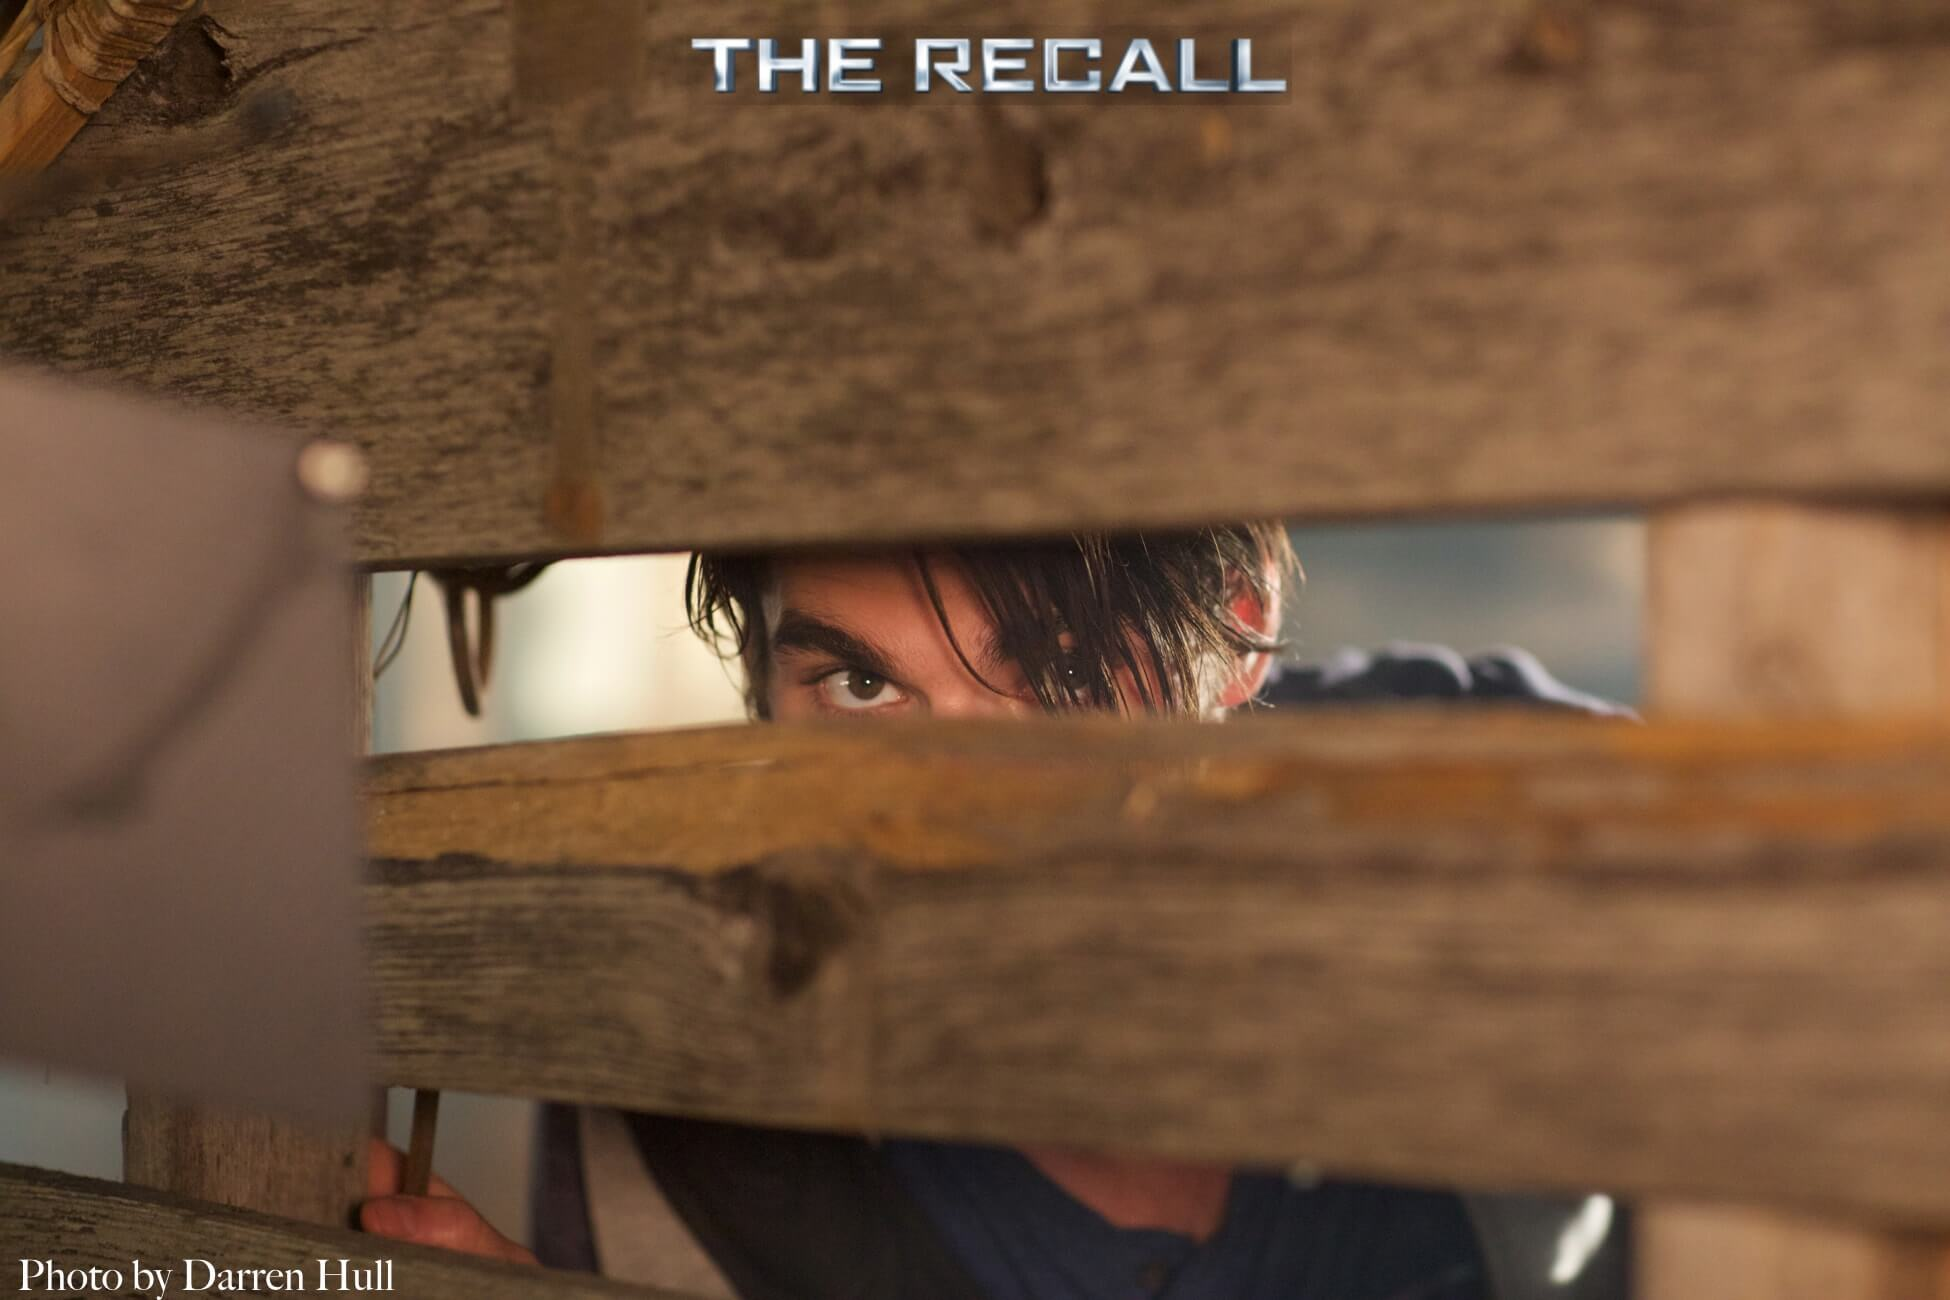 Wesley Snipes the recall abduction7 1 - Wesley Snipes Fights Aliens in The Recall VR Abduction